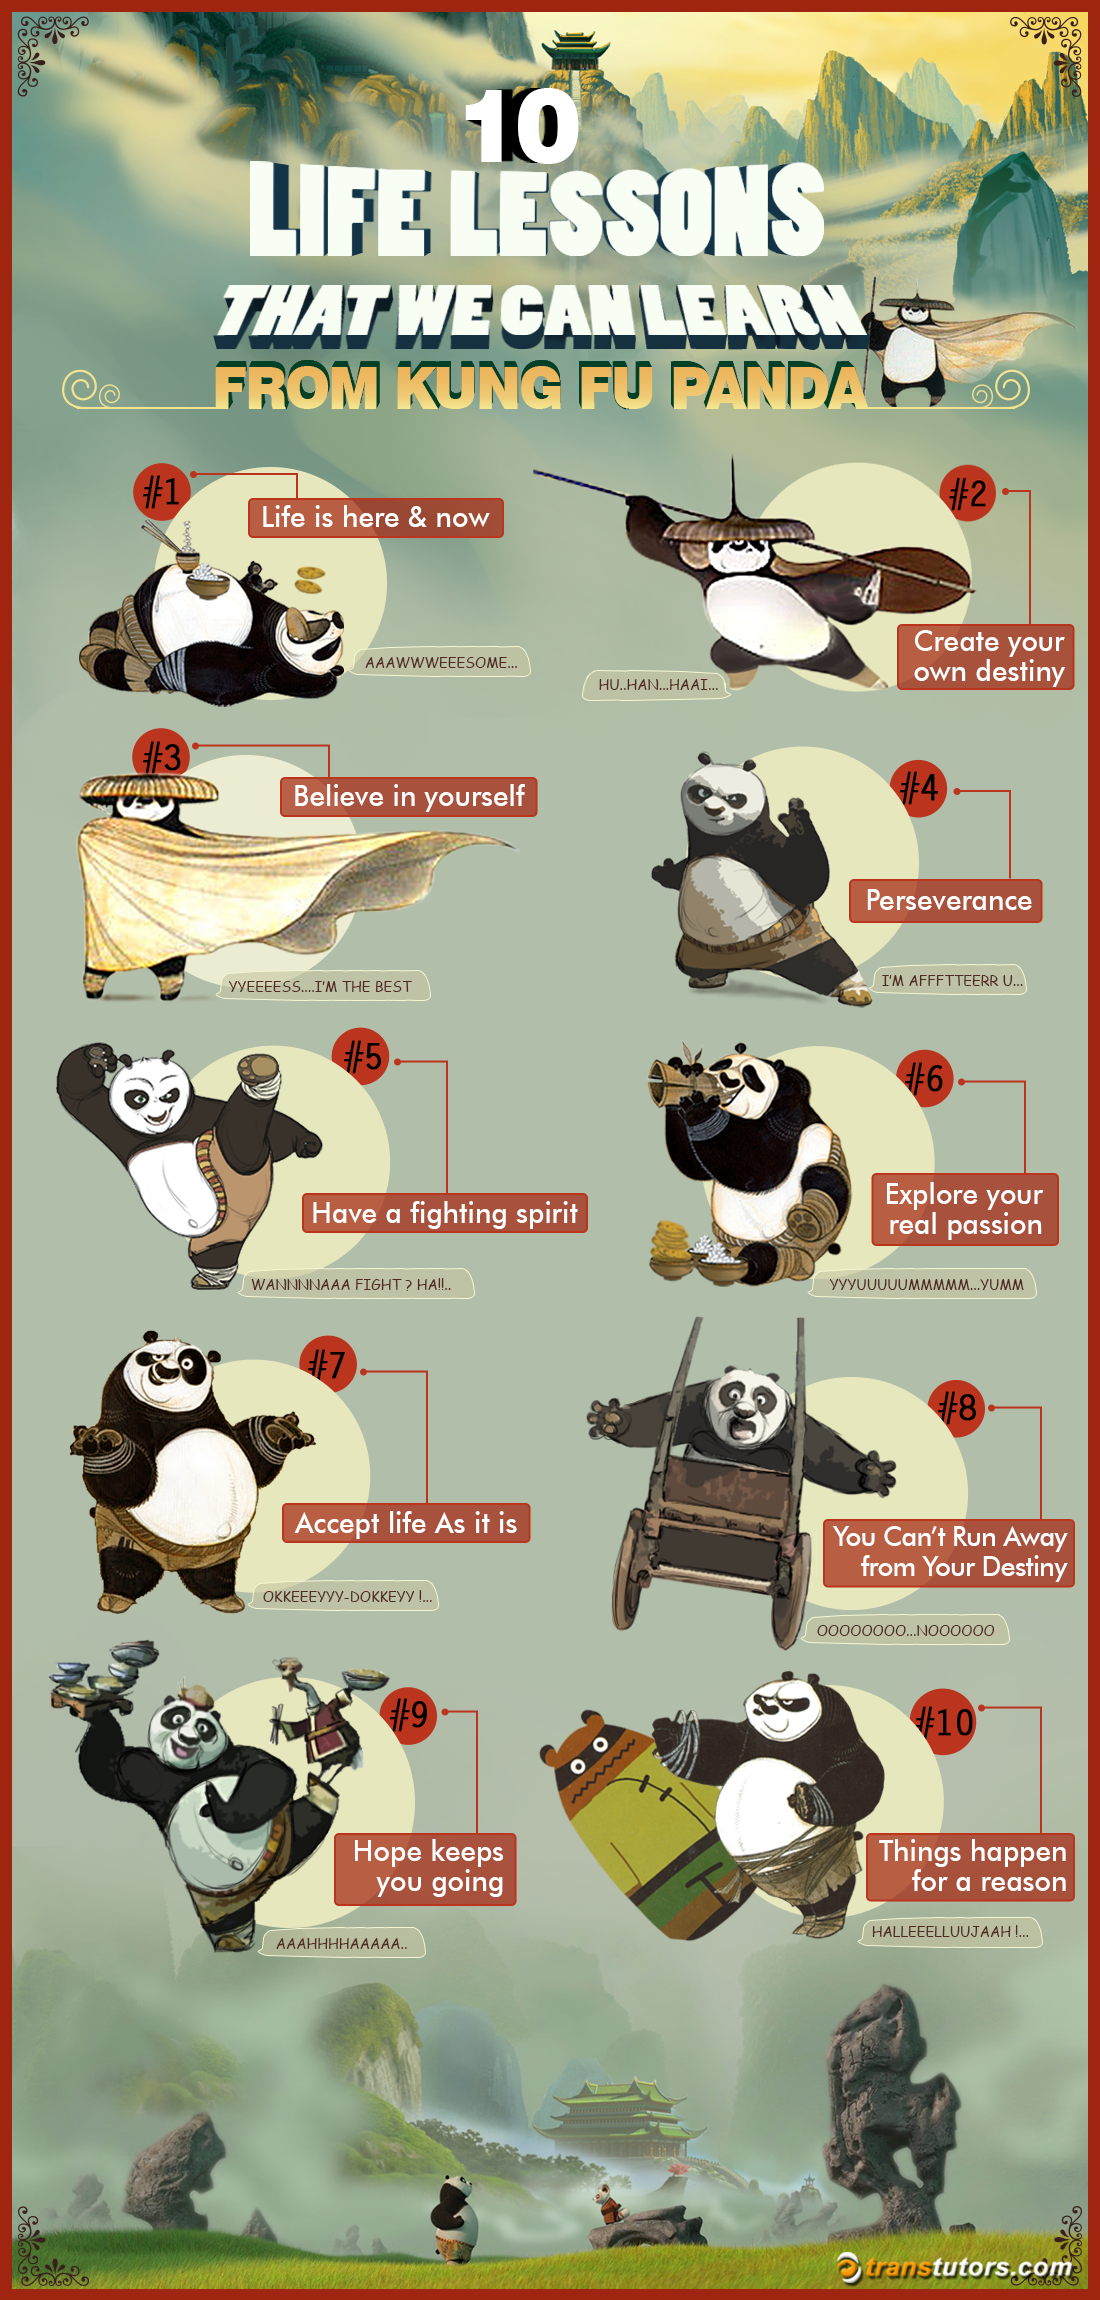 10 Life Lessons That We Can Learn From Kung Fu Panda #Infographic